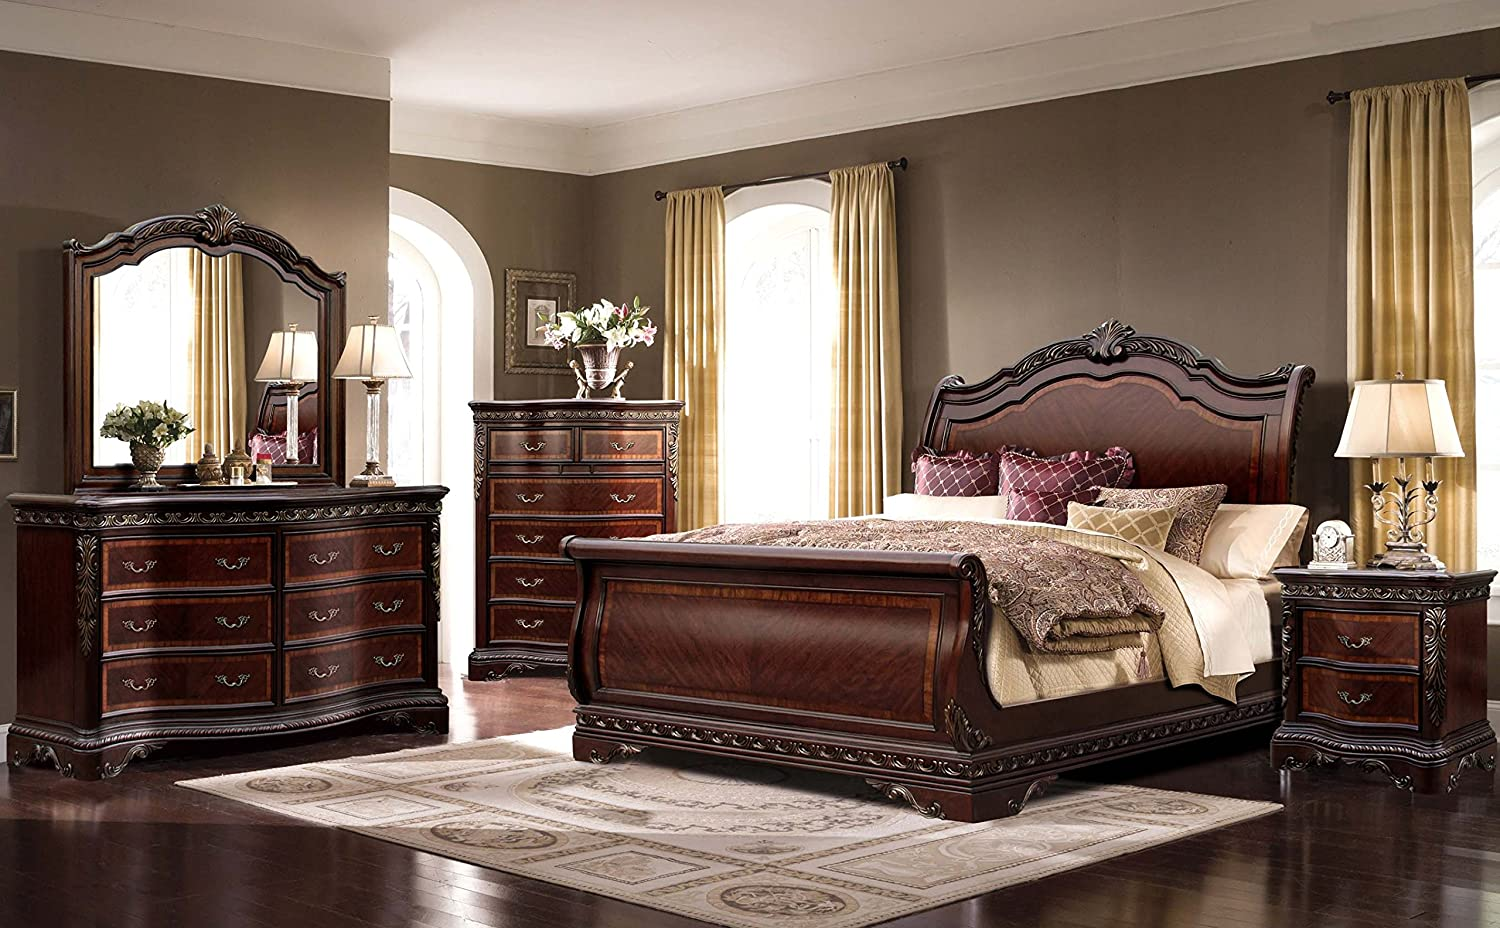 Great Sleigh Bedroom Sets Interior